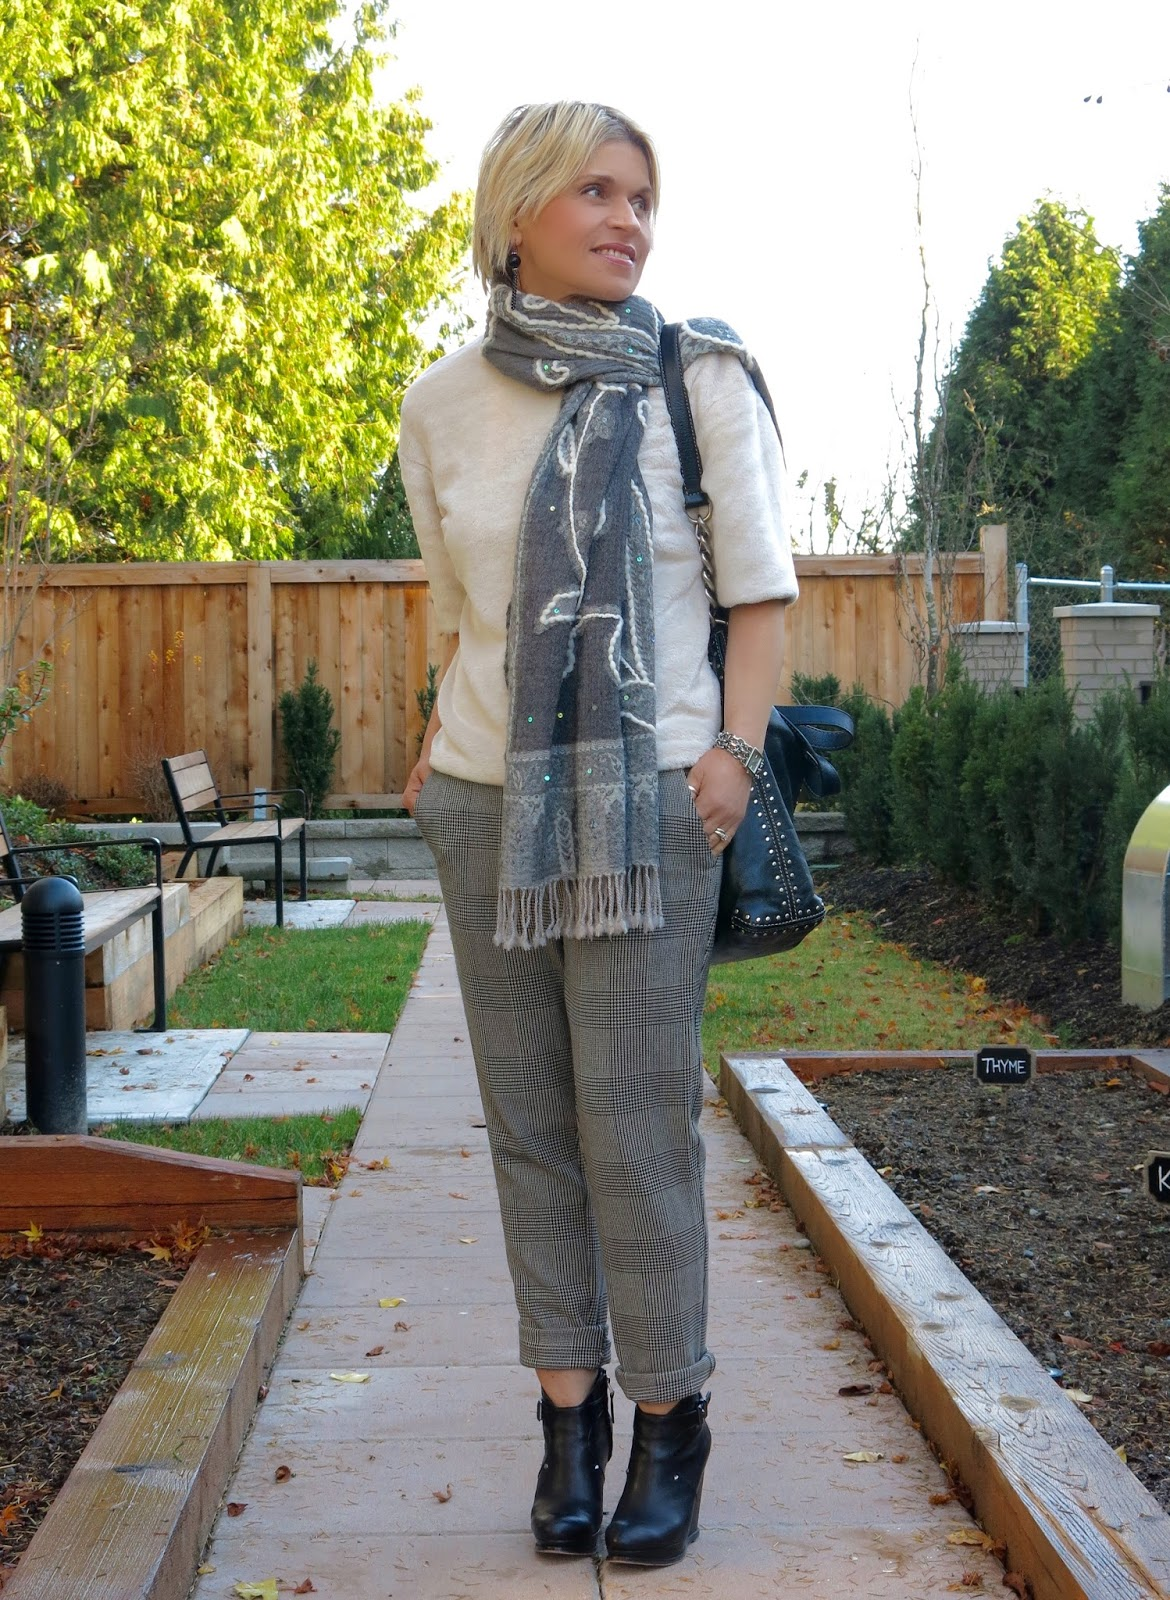 Short changed:  plush tee, slouchy plaid pants, and embroidered scarf